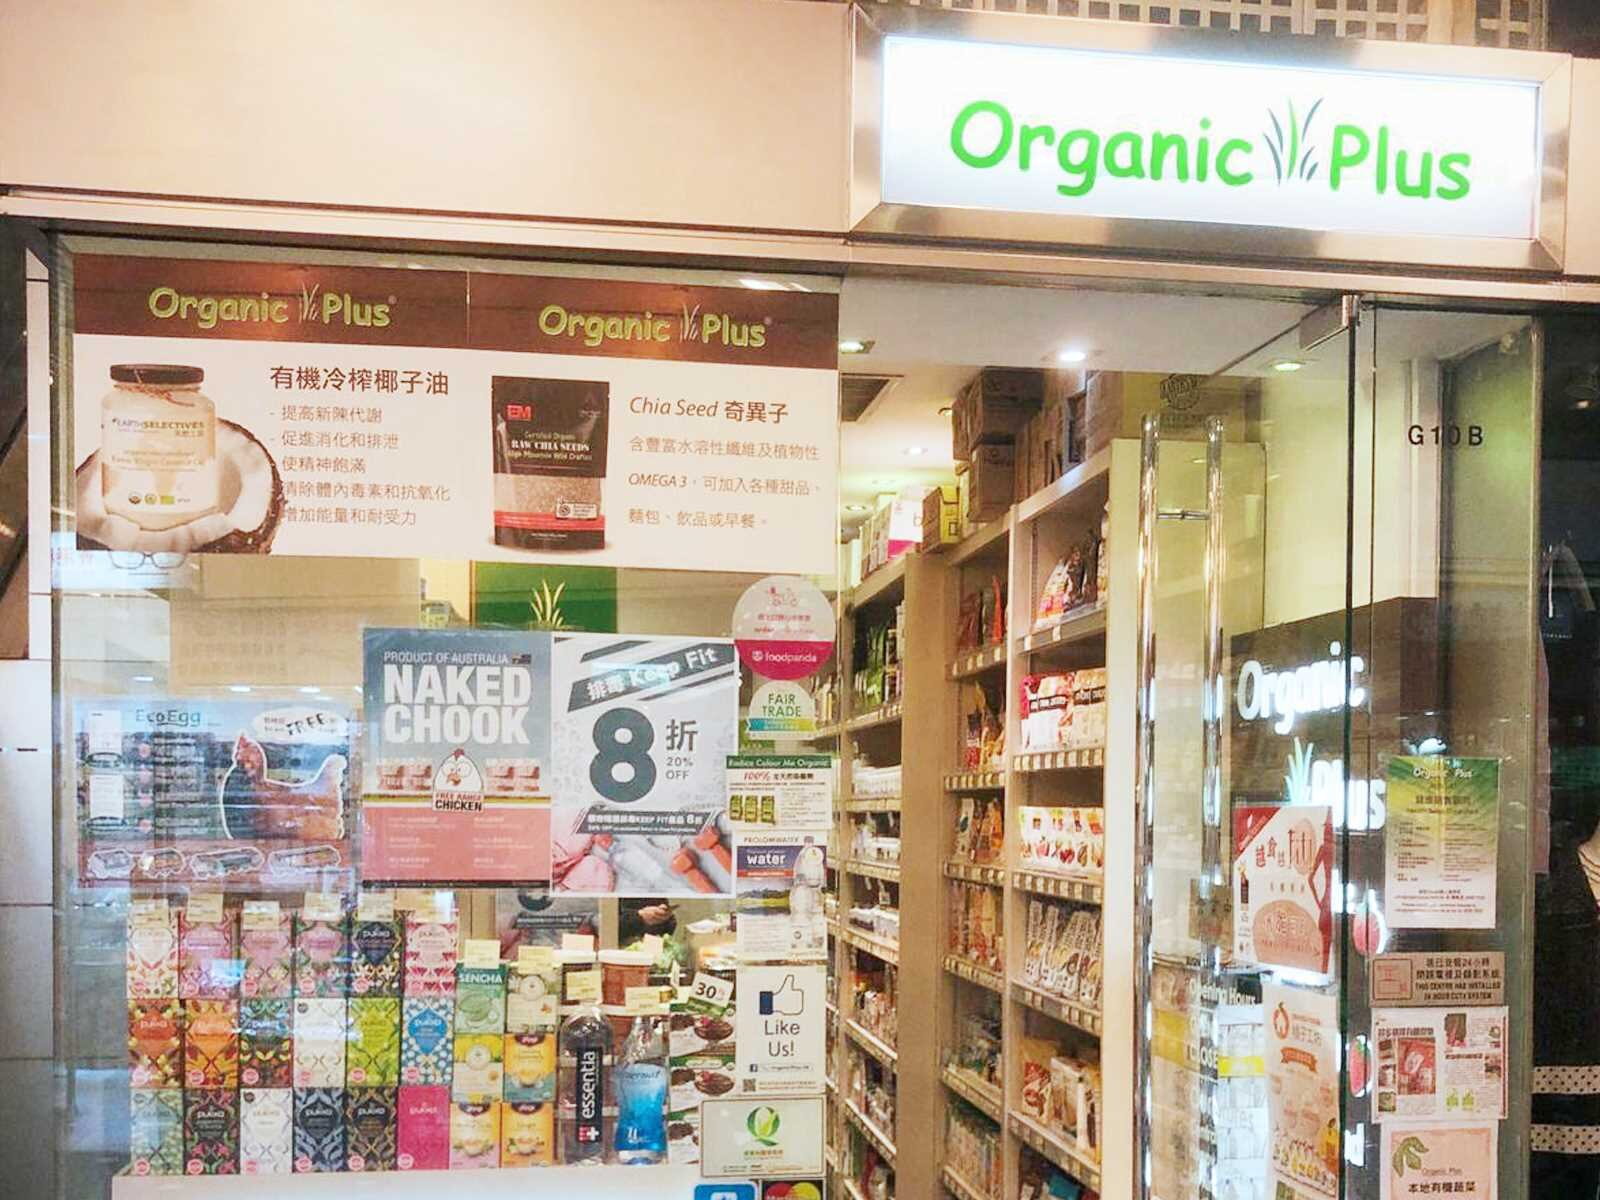 Organic Plus   North Point  Business Hours:10am-8pm Mobile:2887 6787 Email:fh@organicplus.com.hk Address:Shop 10B, G/F, Olympia Plaza, 255 King's Road,  North Point, H.K.